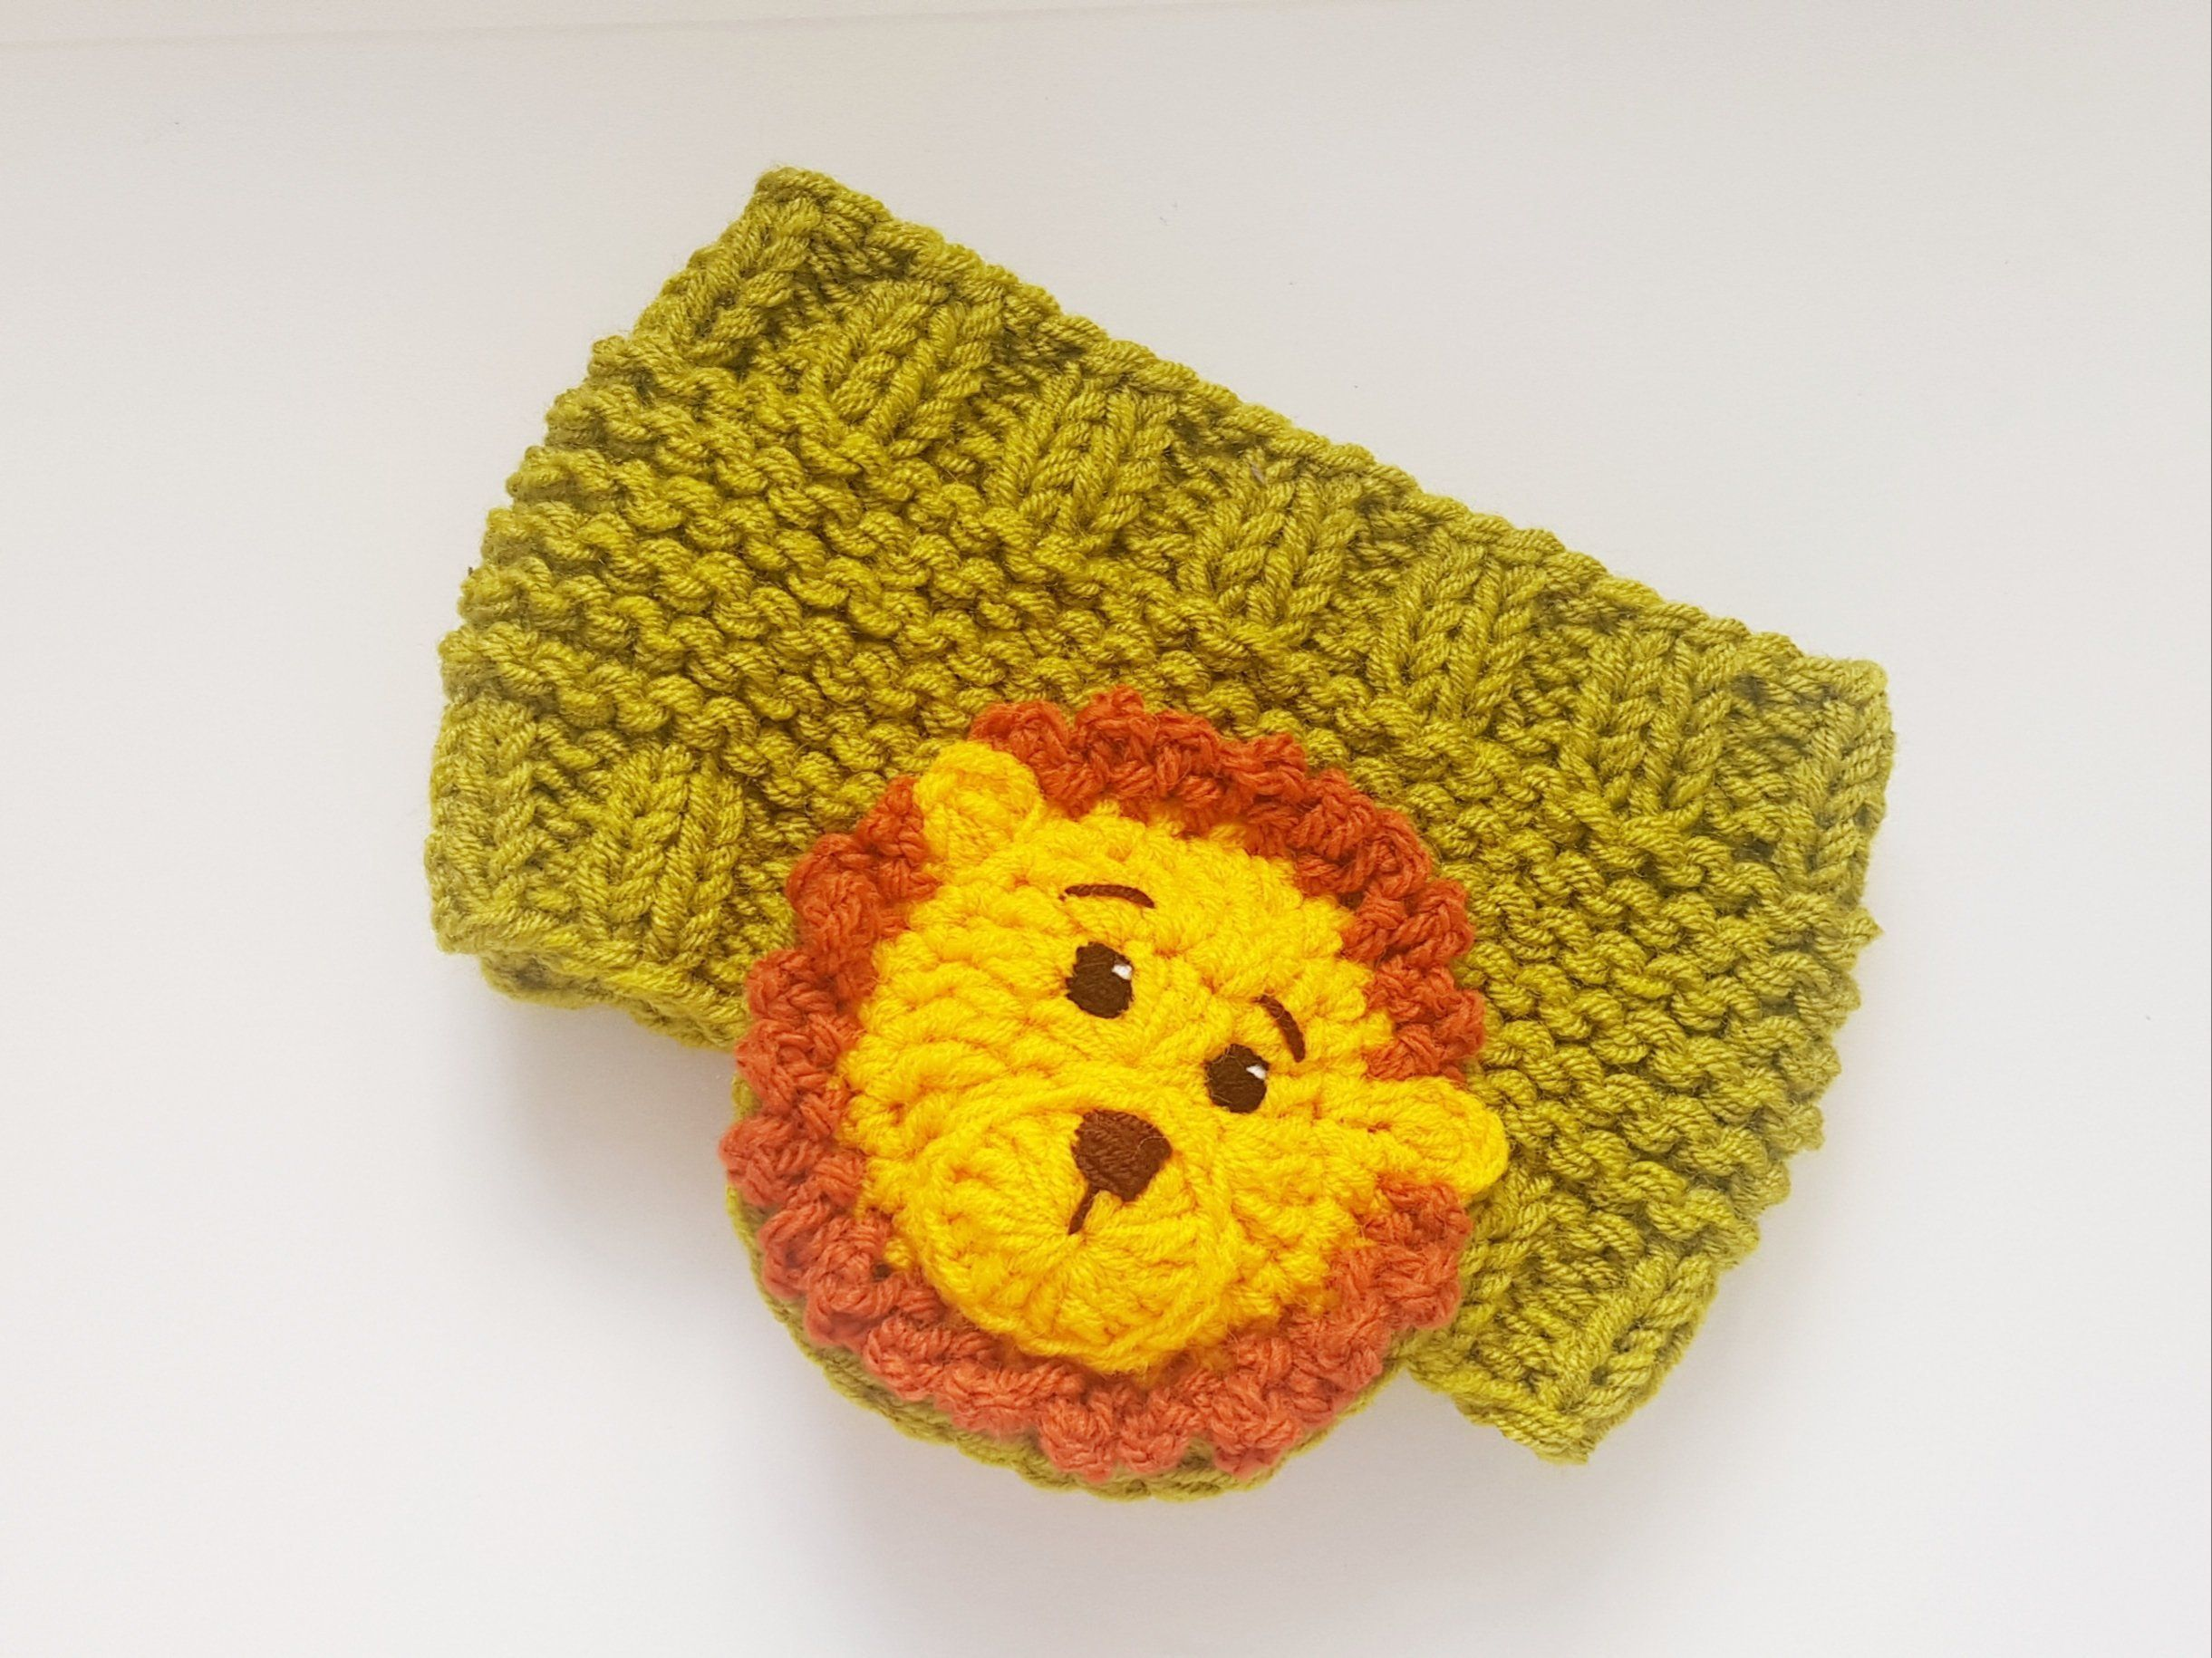 Knit Earwarmer, Lion Headband, Toddler Oufit, Kids Accessories, Knit Headband, Animal Motifs, Messy Bun Hat, Toddler Fashion, Lion Applique #kidsmessyhats Knit  Earwarmer, Lion Headband, Toddler Oufit, Kids Accessories, Knit Headband, Animal Motifs, Messy Bun Hat, Toddler Fashion, Lion Applique #kidsmessyhats Knit Earwarmer, Lion Headband, Toddler Oufit, Kids Accessories, Knit Headband, Animal Motifs, Messy Bun Hat, Toddler Fashion, Lion Applique #kidsmessyhats Knit  Earwarmer, Lion Headband, To #kidsmessyhats